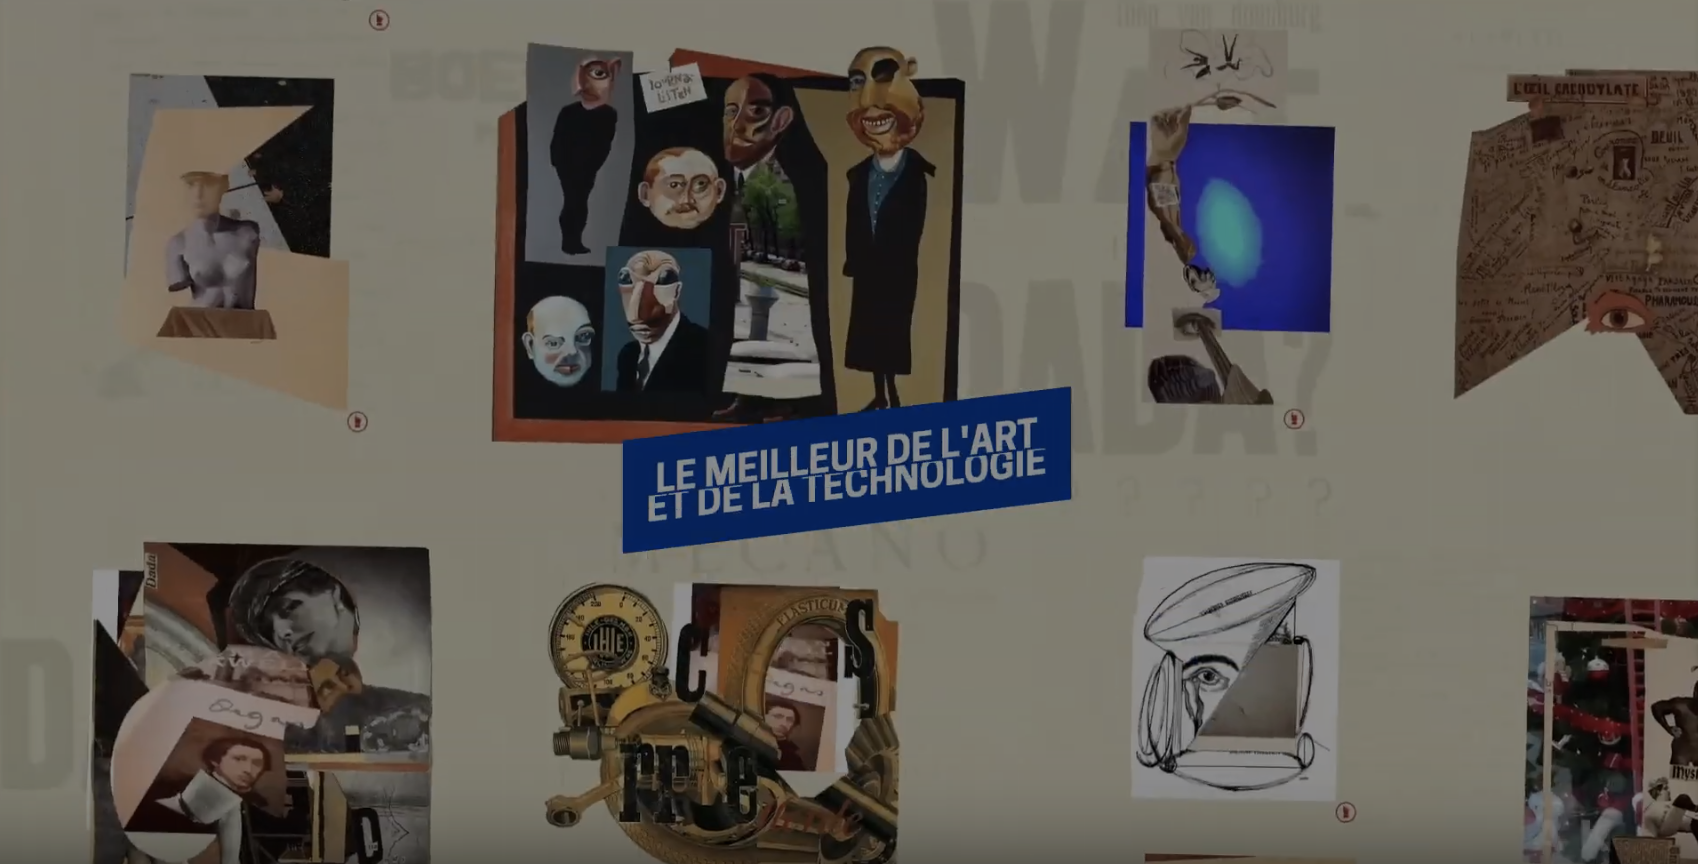 A trailer that celebrates Quebec's digital creativity